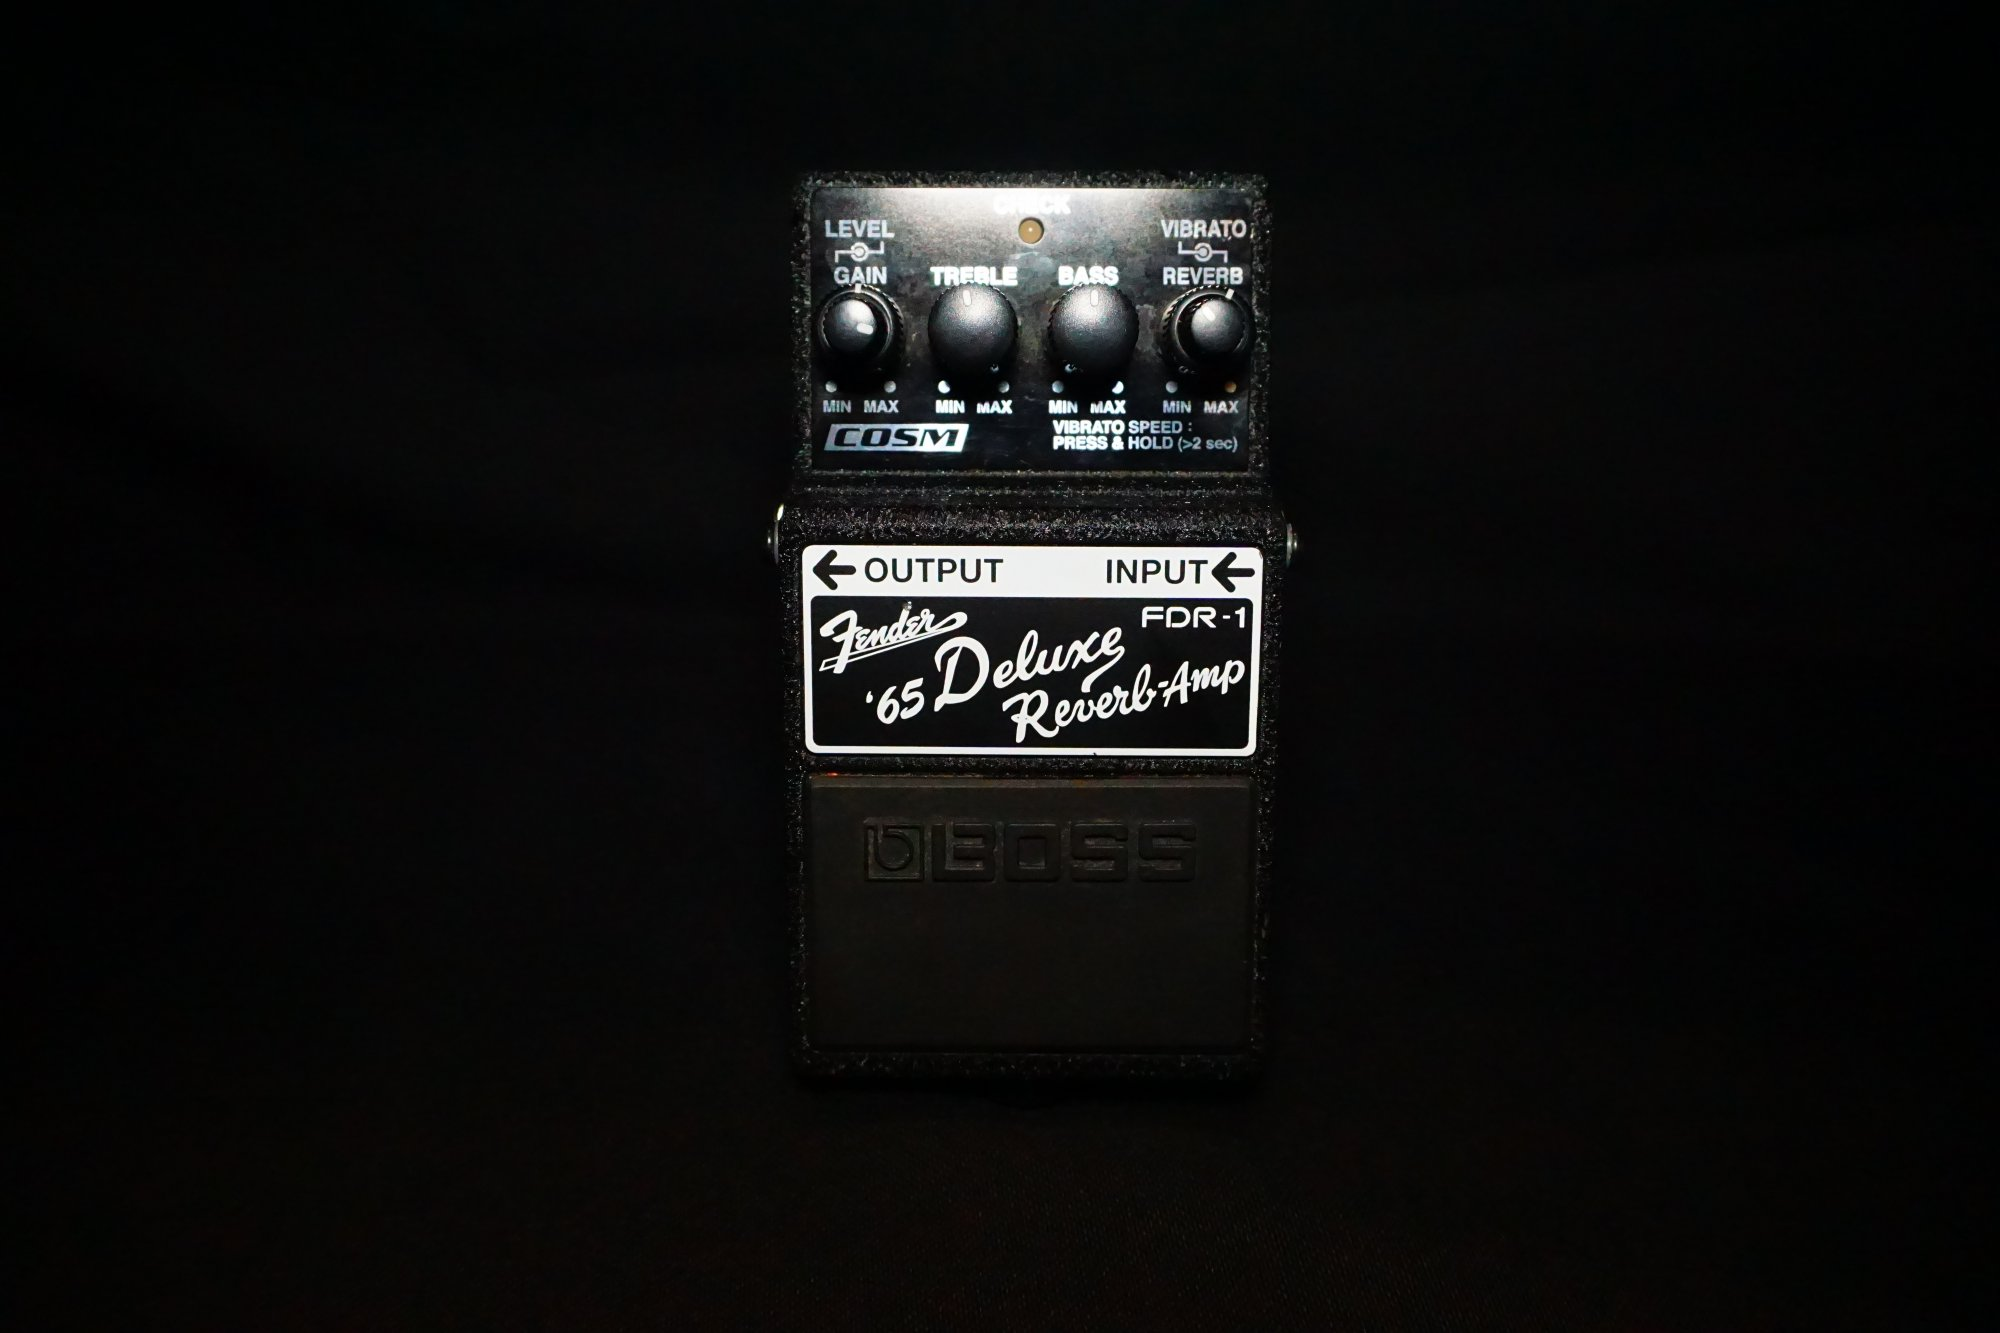 Boss Fender 65 Deluxe Reverb-Amp effects pedal